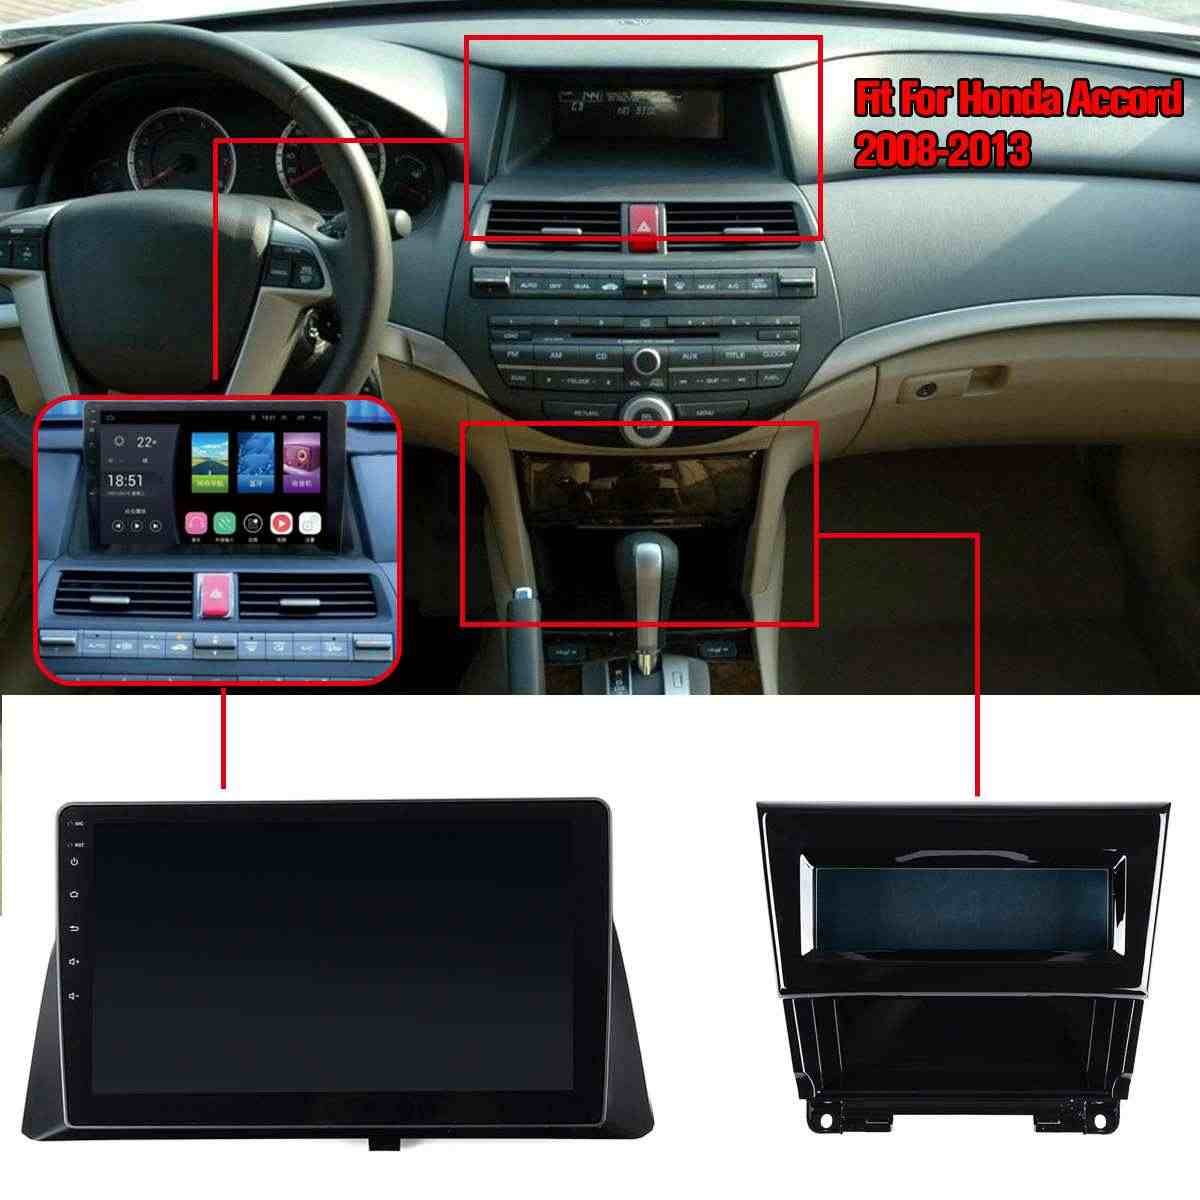 """Android 8.0/8.1 Quad Cores 10.2 """"Touch Screen Auto HD MP5 Speler BT FM GPS WIFI Auto Multimedia speler voor Honda Accord 2008"""